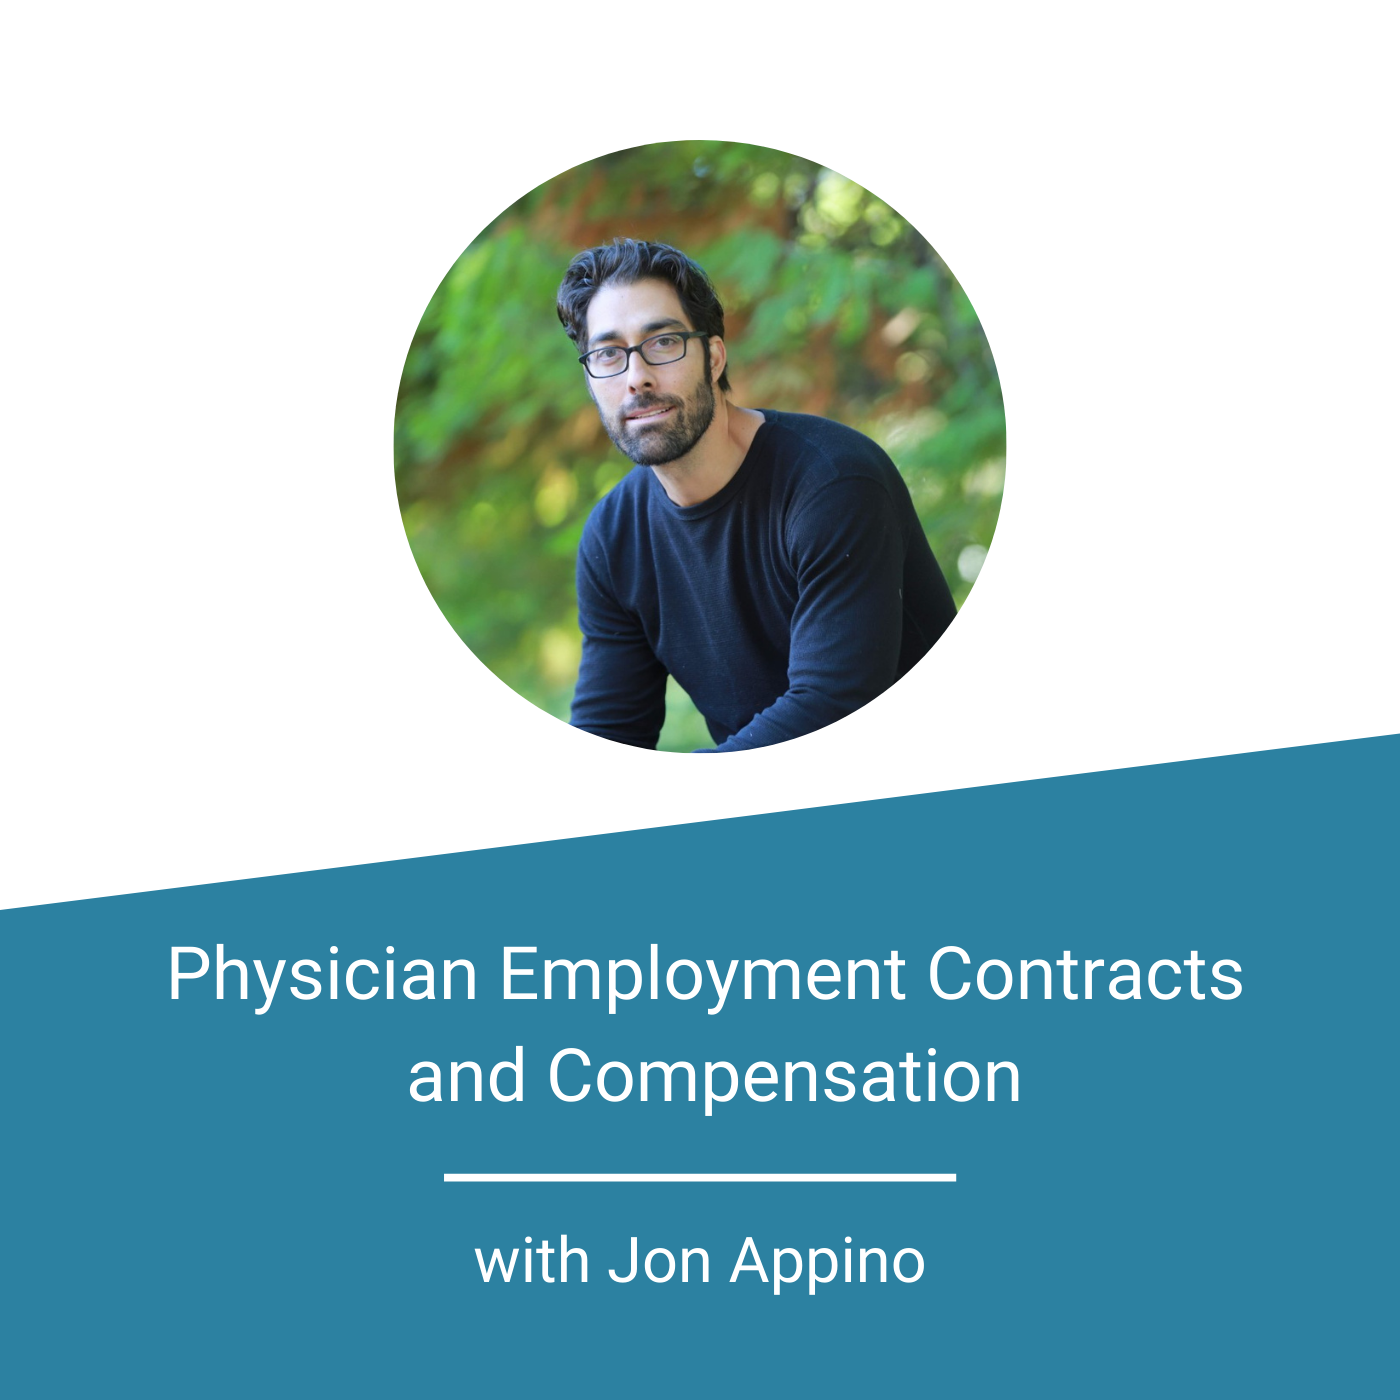 Finance For Physicians - Jon Appino Feature Image